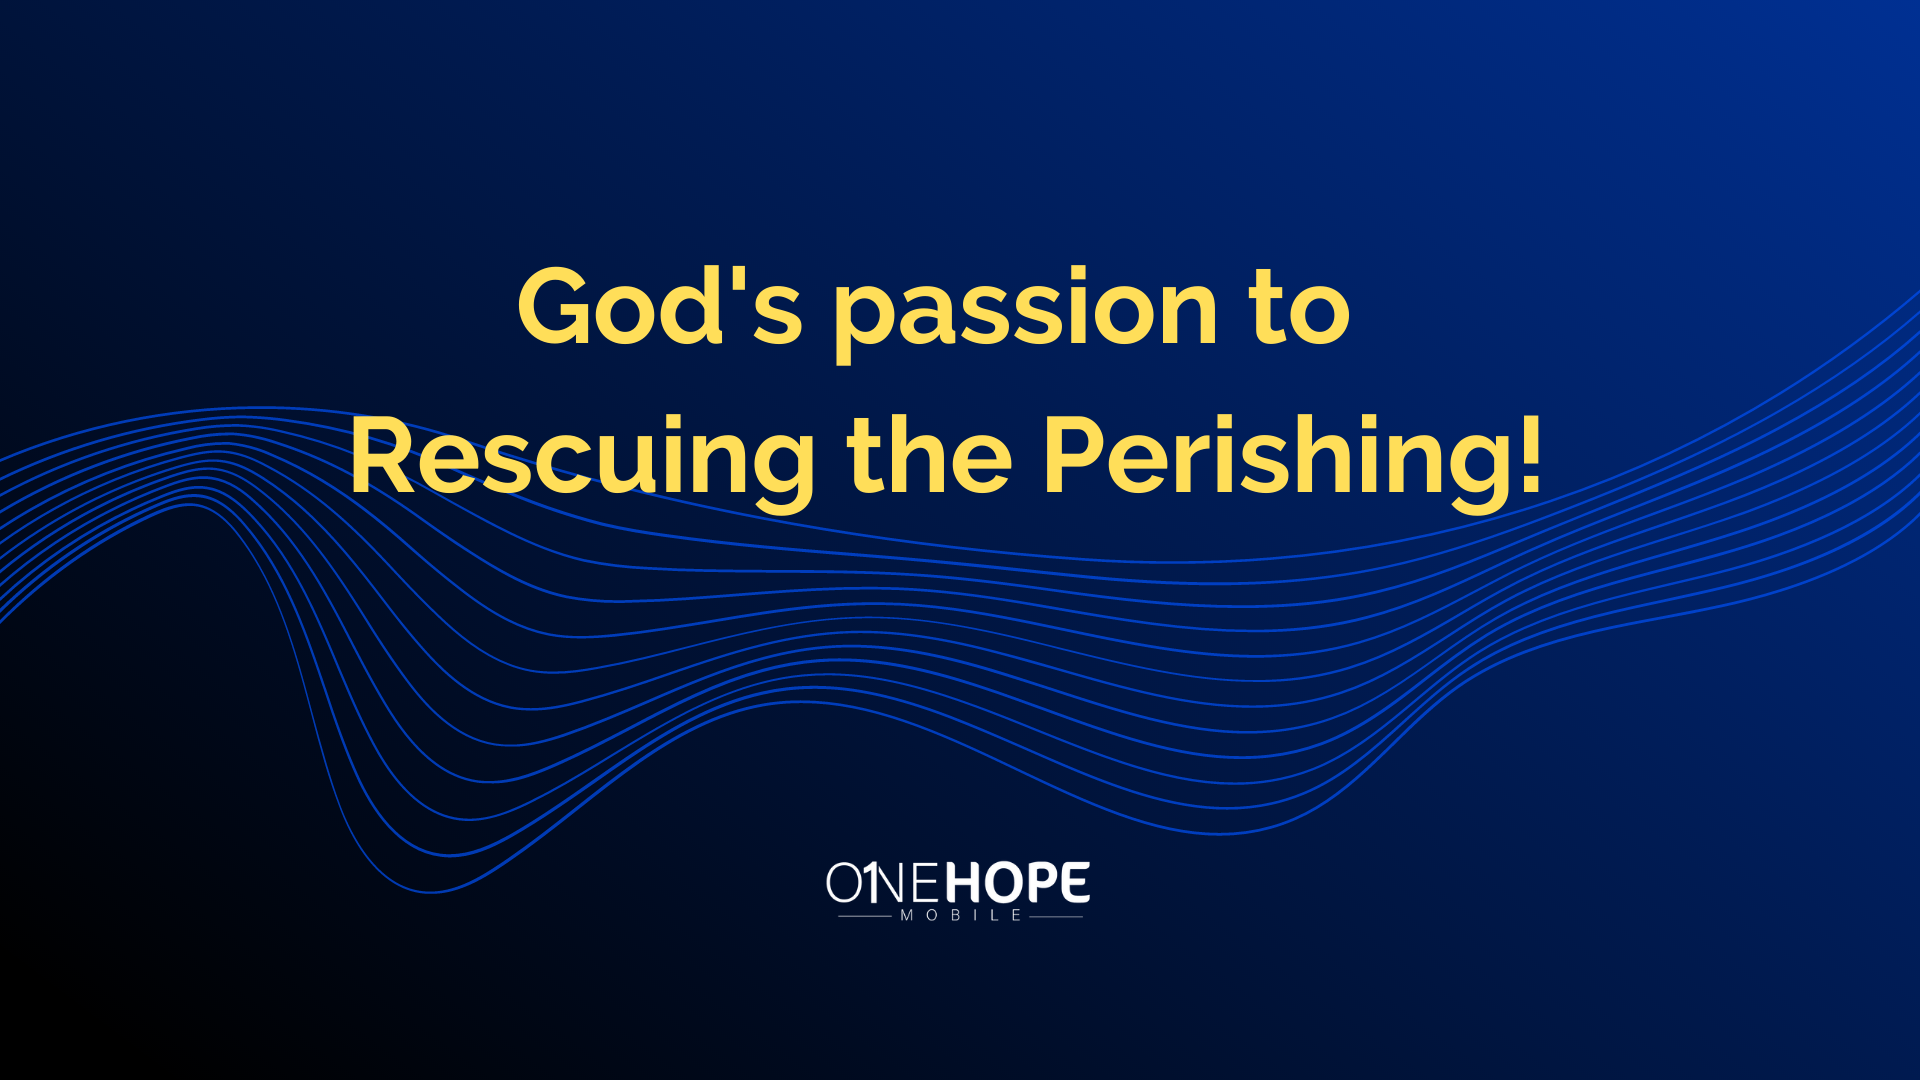 God's Passion for Rescuing the Perishing